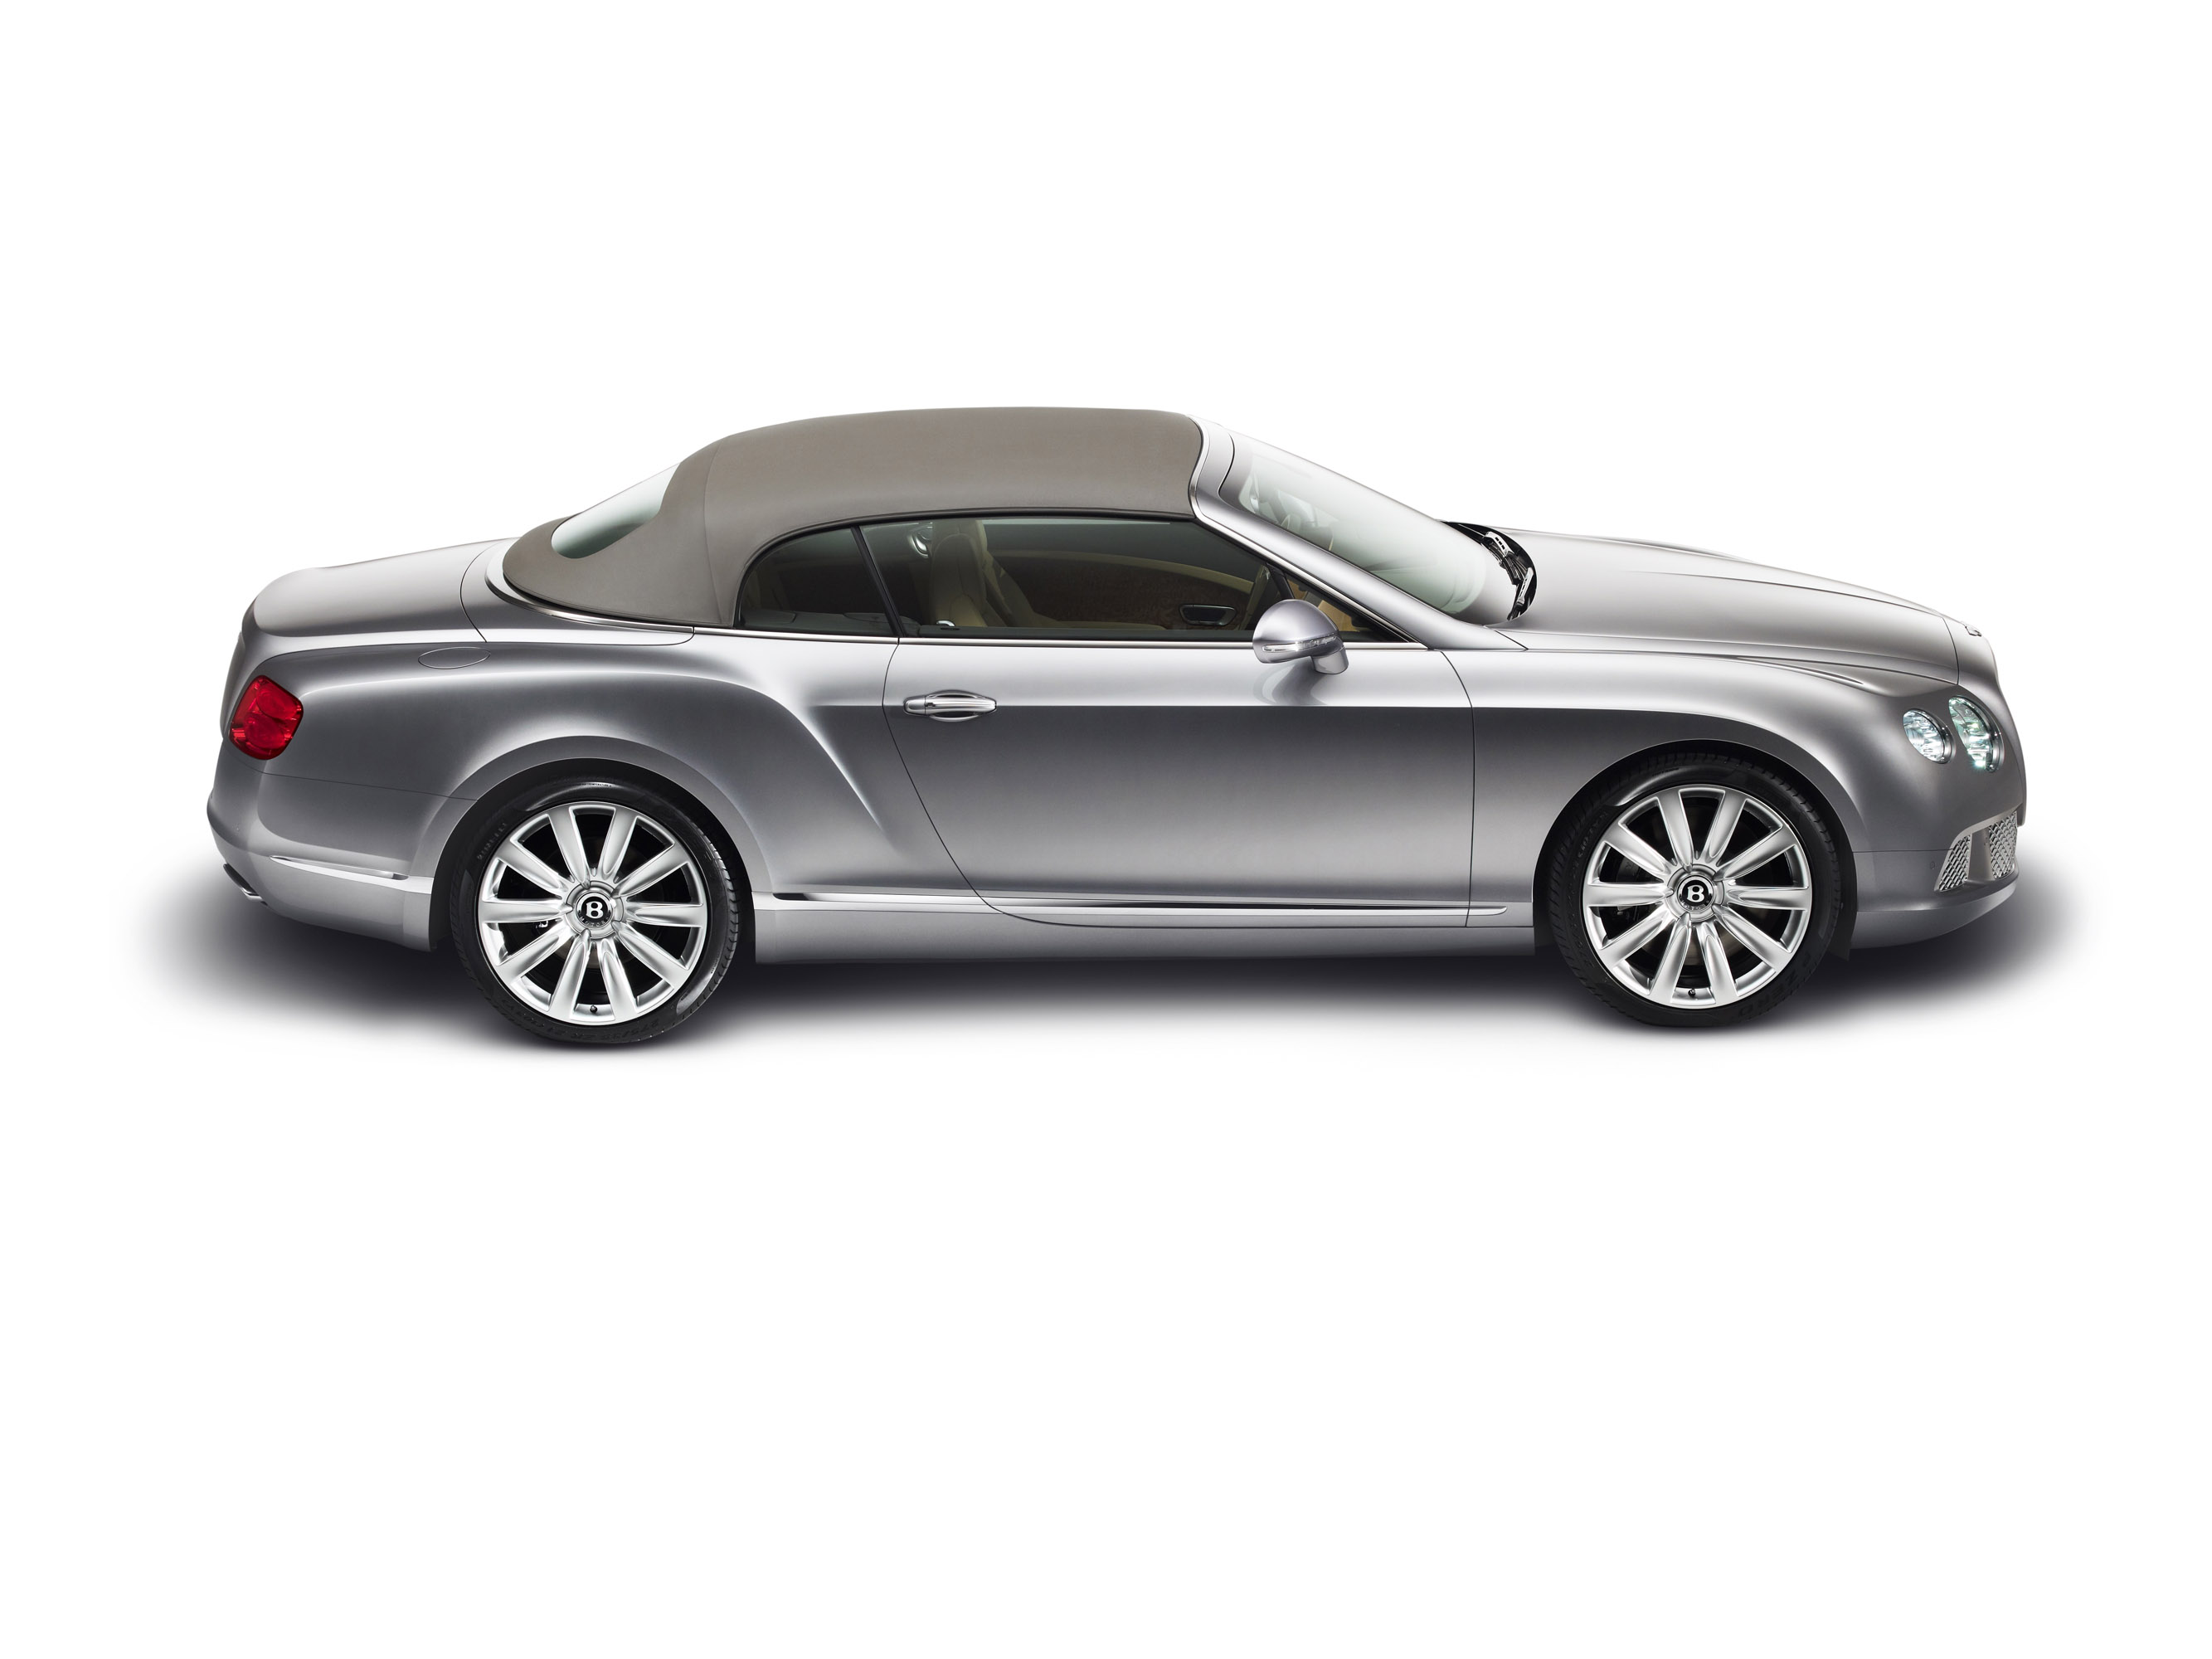 convertible gt pr continental wikipedia alexandre supersport suv flickr bentley price wiki